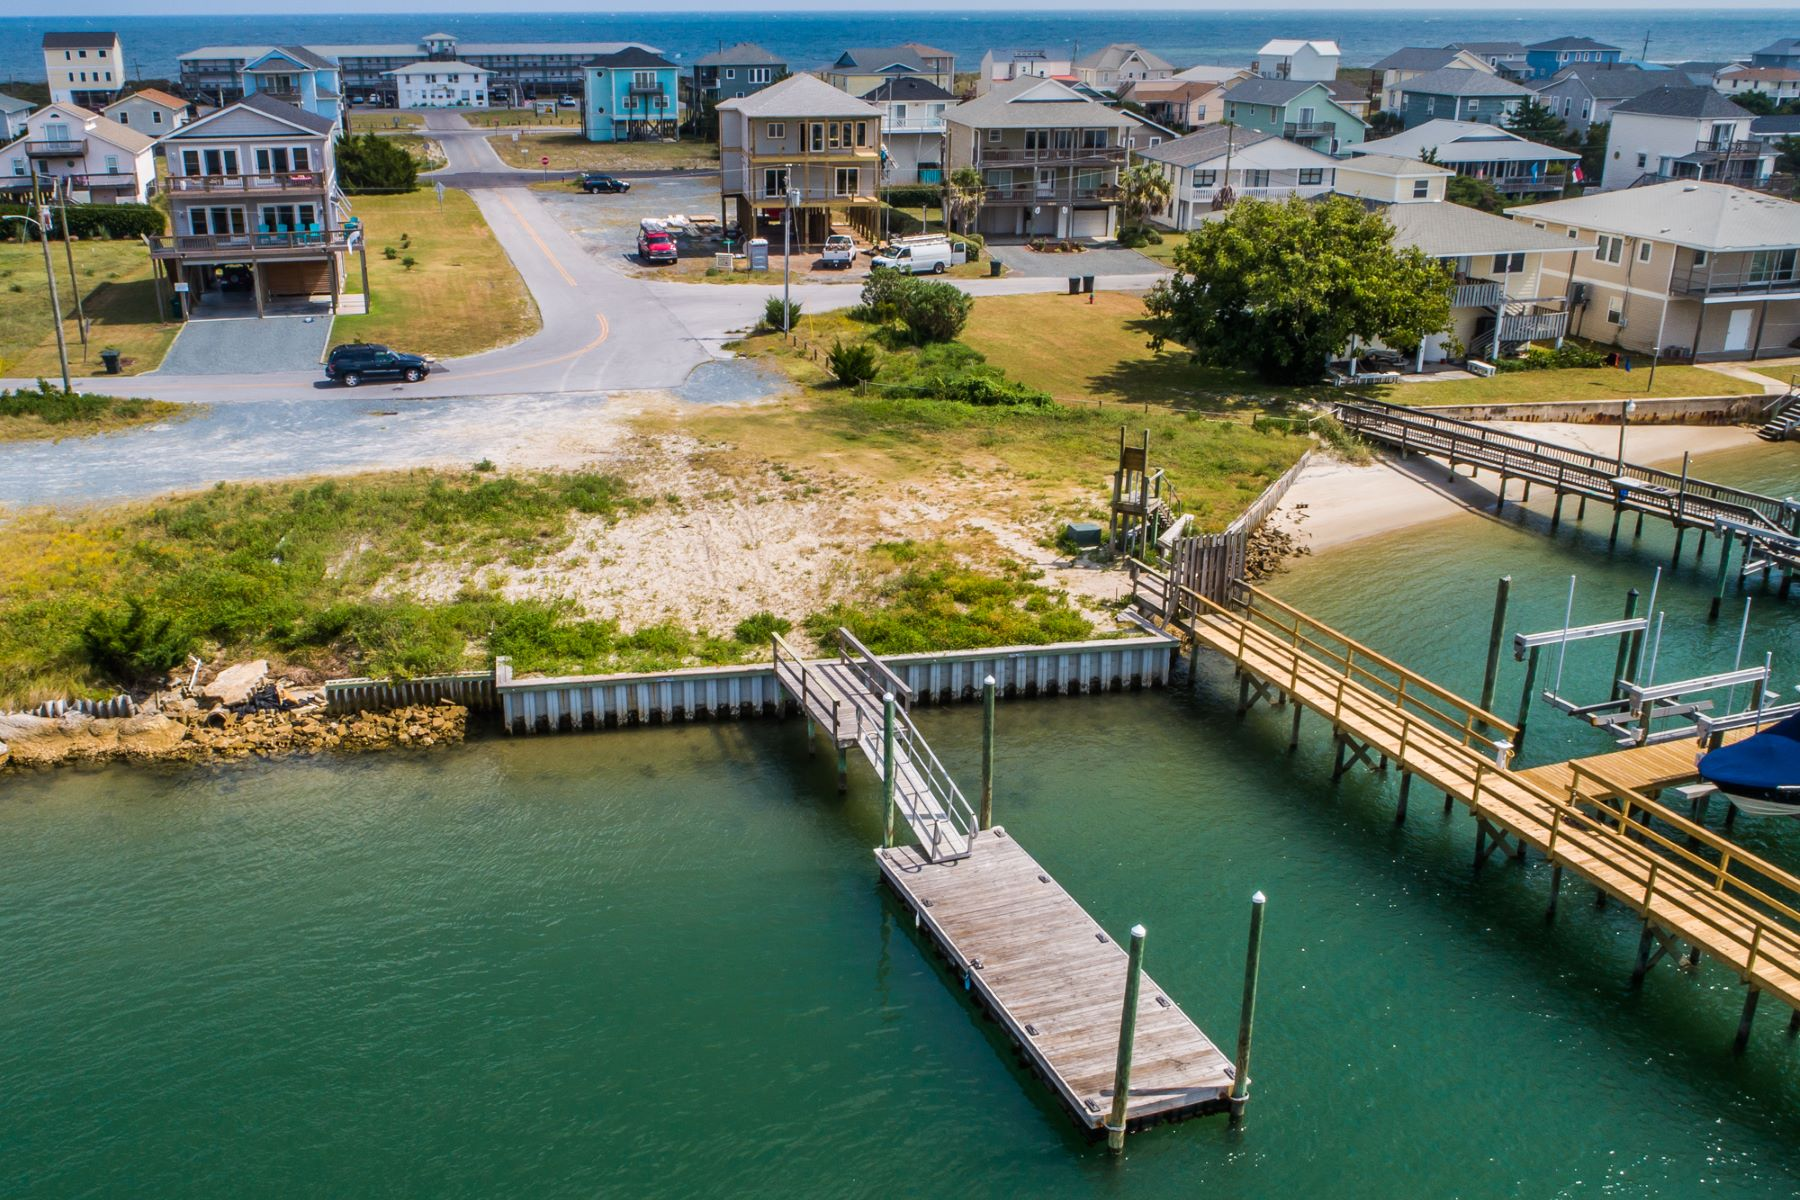 Land for Sale at Spacious Waterfront Land with Private Dock 1522 Carolina Boulevard Topsail Beach, North Carolina 28445 United States